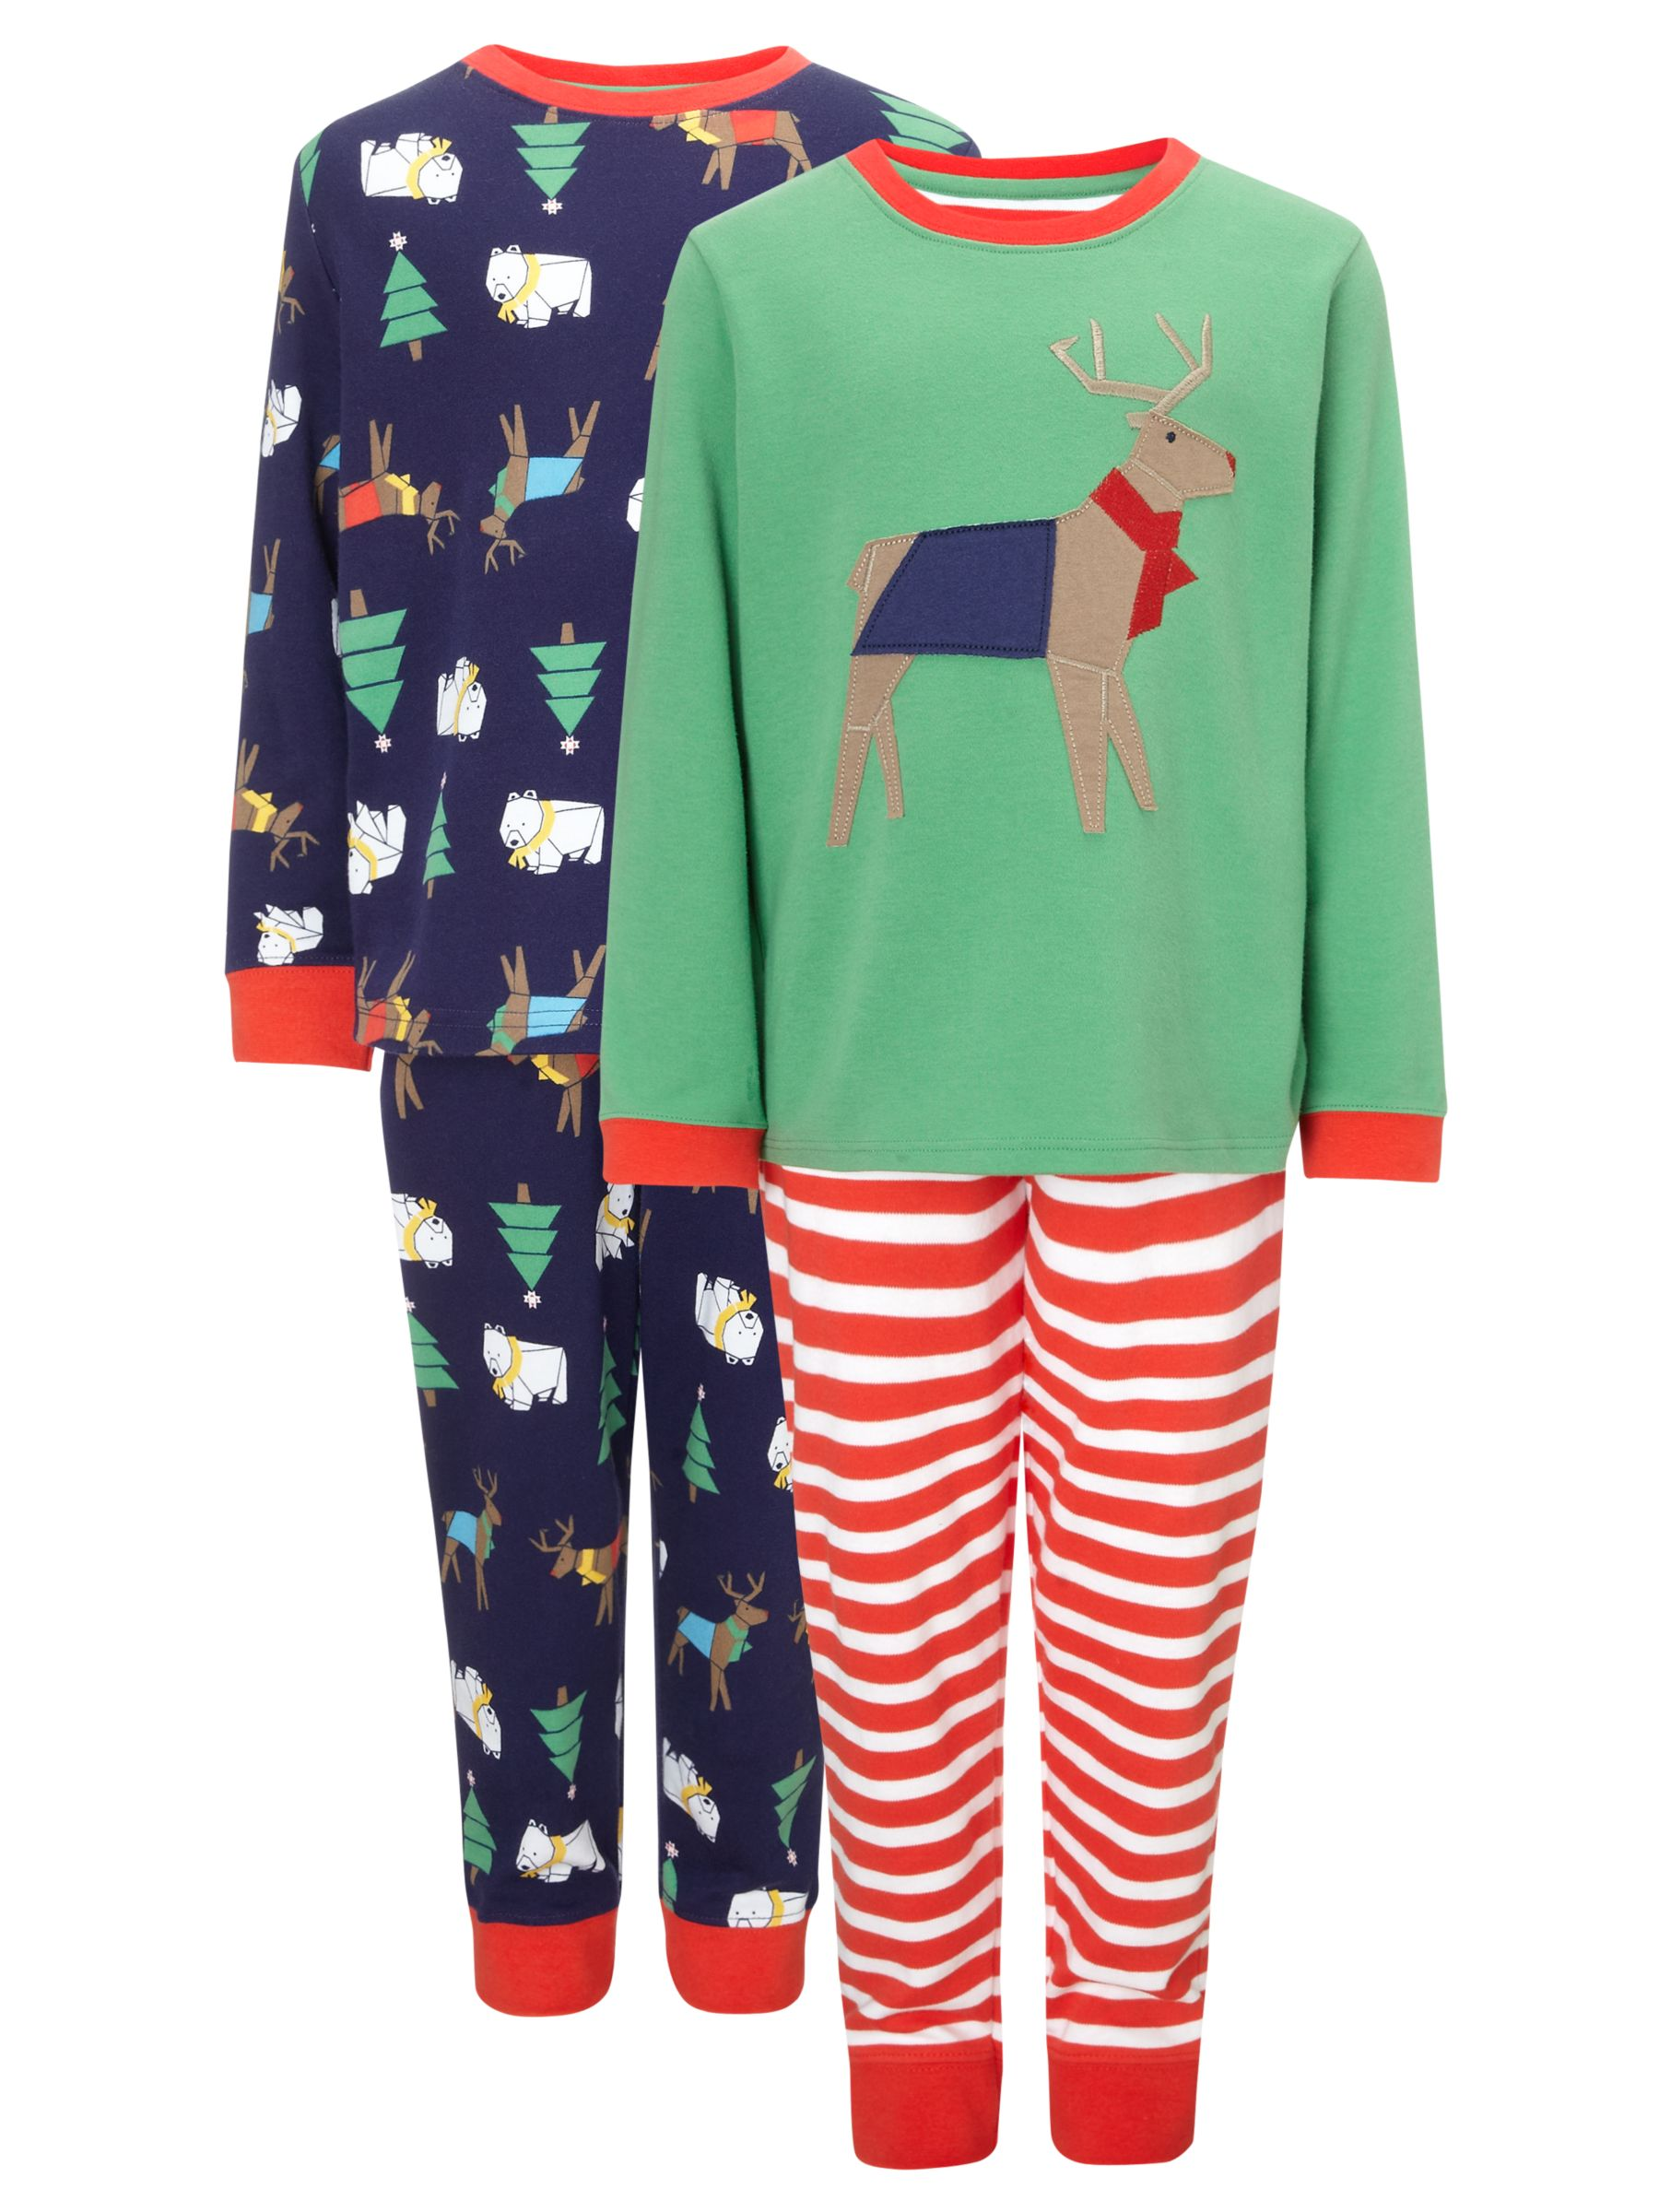 John Lewis Boy Reindeer Pyjamas, Pack of 2, Multi